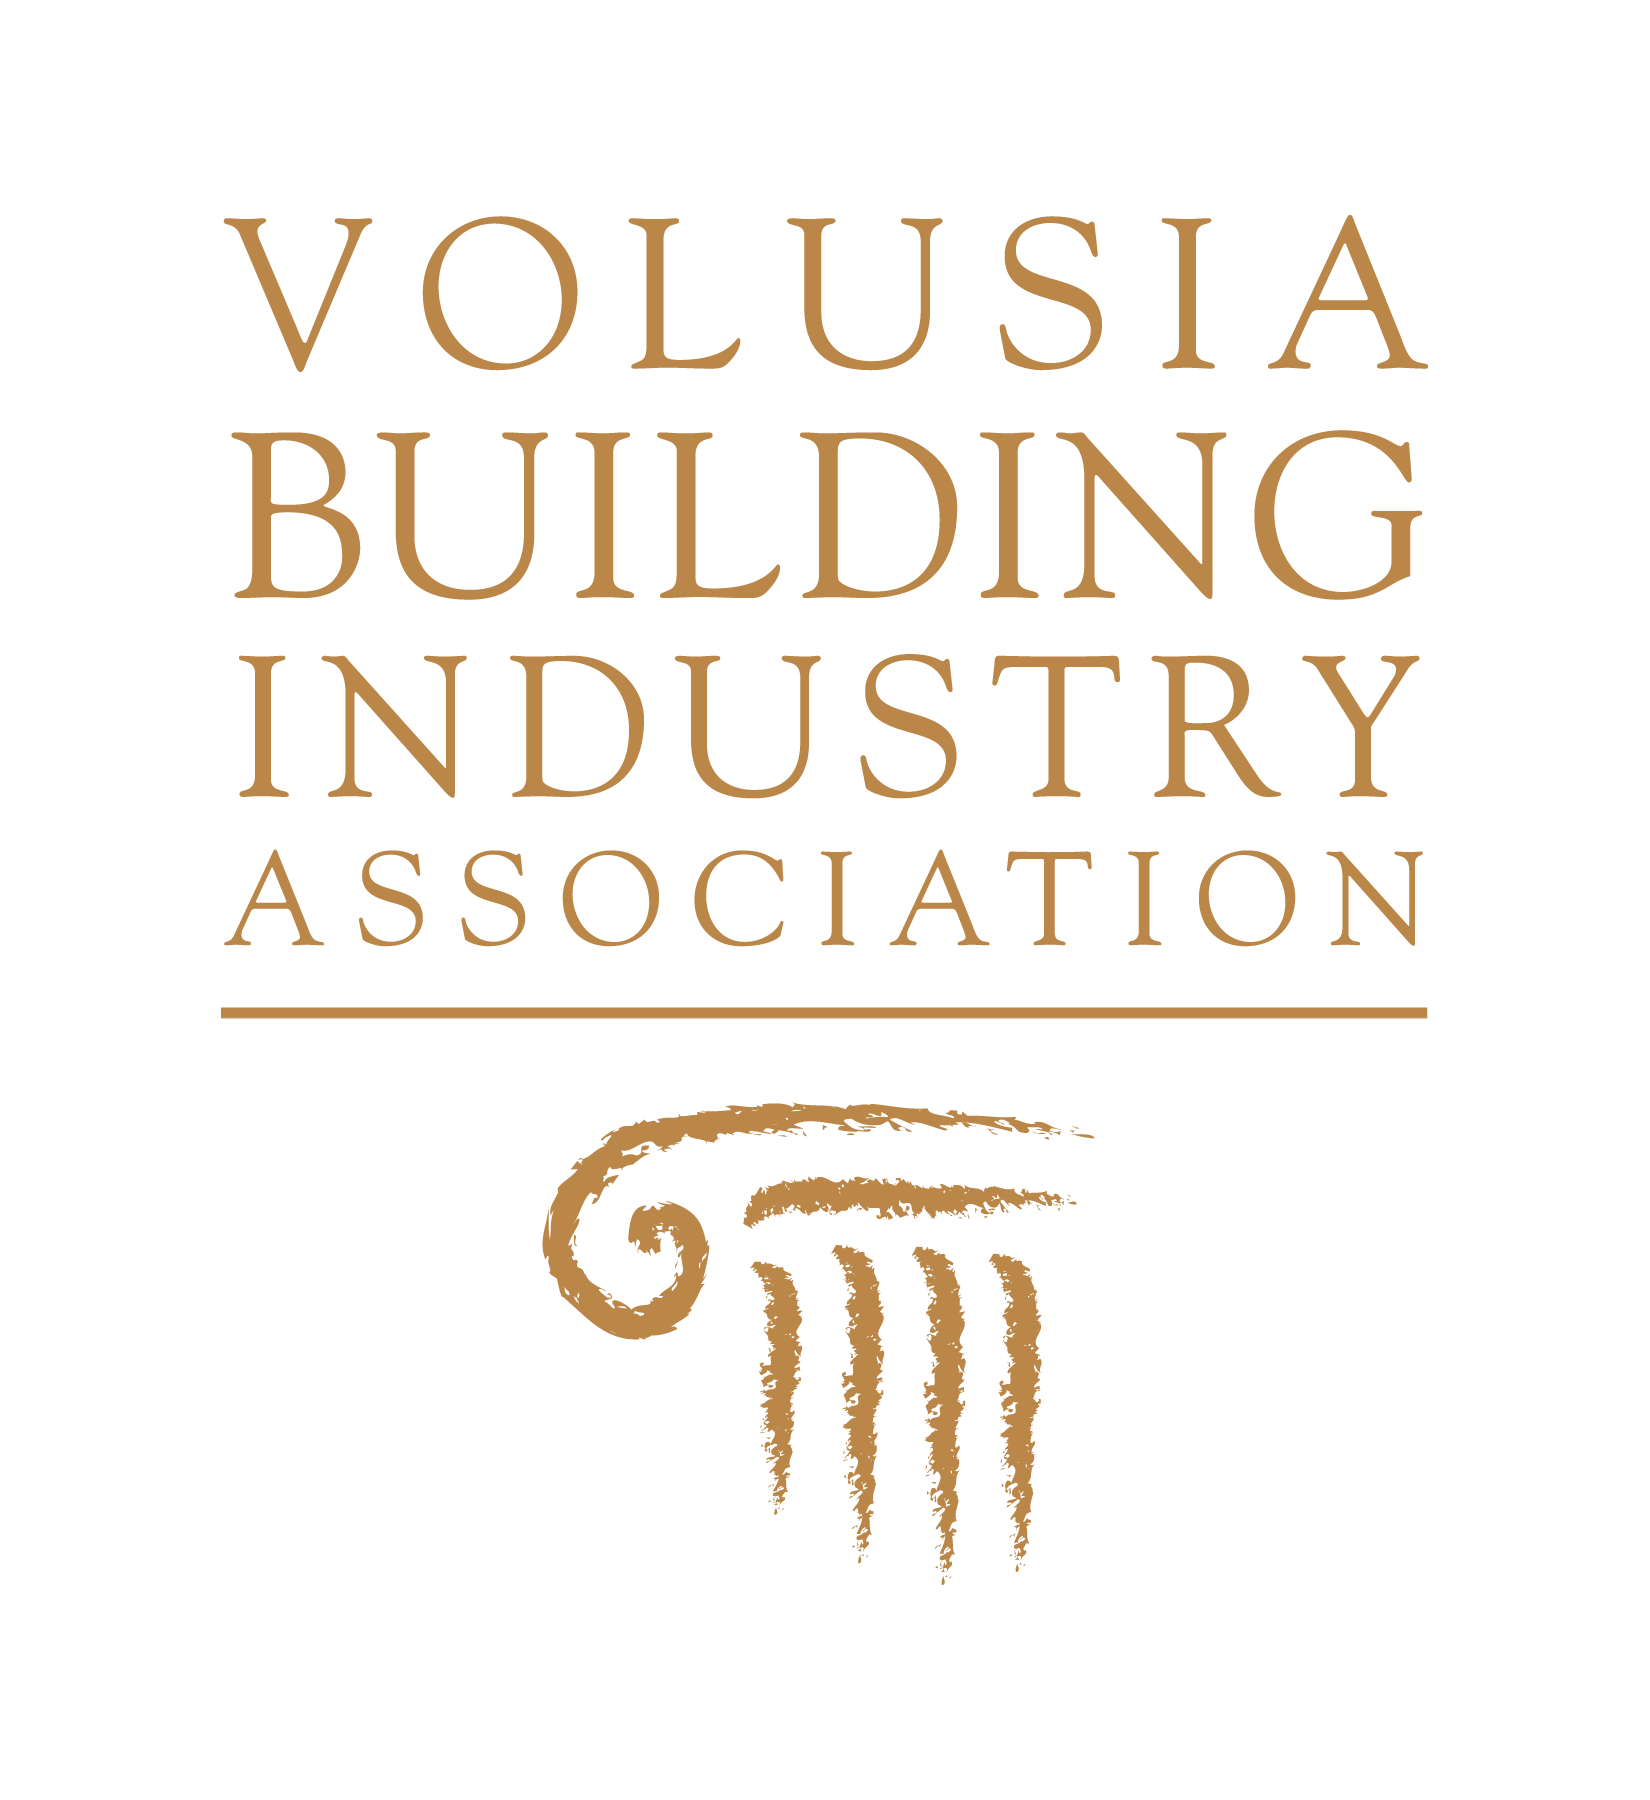 Newsletter clipart paperboy. Volusia building industry association